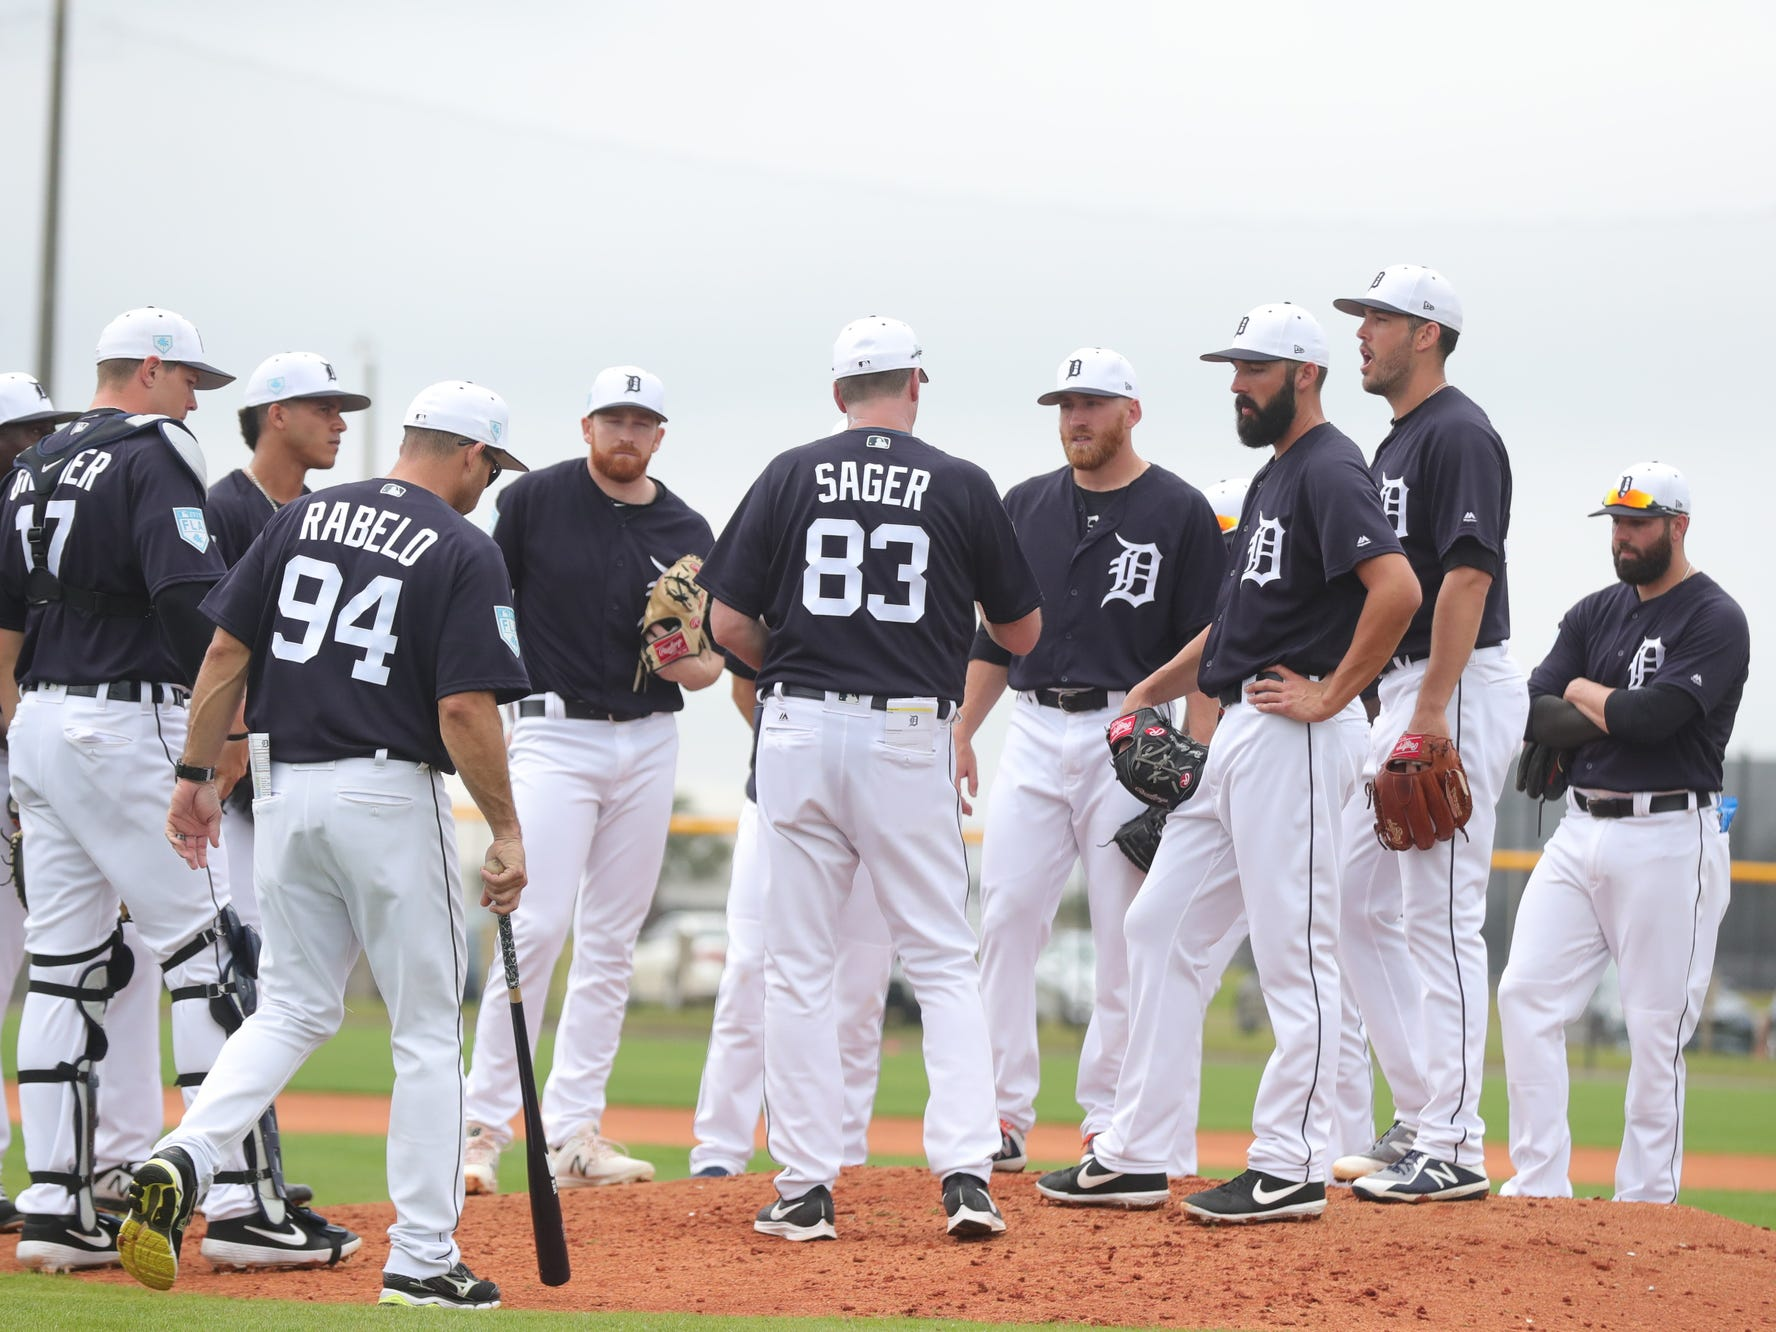 Detroit Tigers pitchers listen to instructions from coach A. J. Sager during practice Monday, Feb. 18, 2019 at Joker Marchant Stadium in Lakeland, Fla.